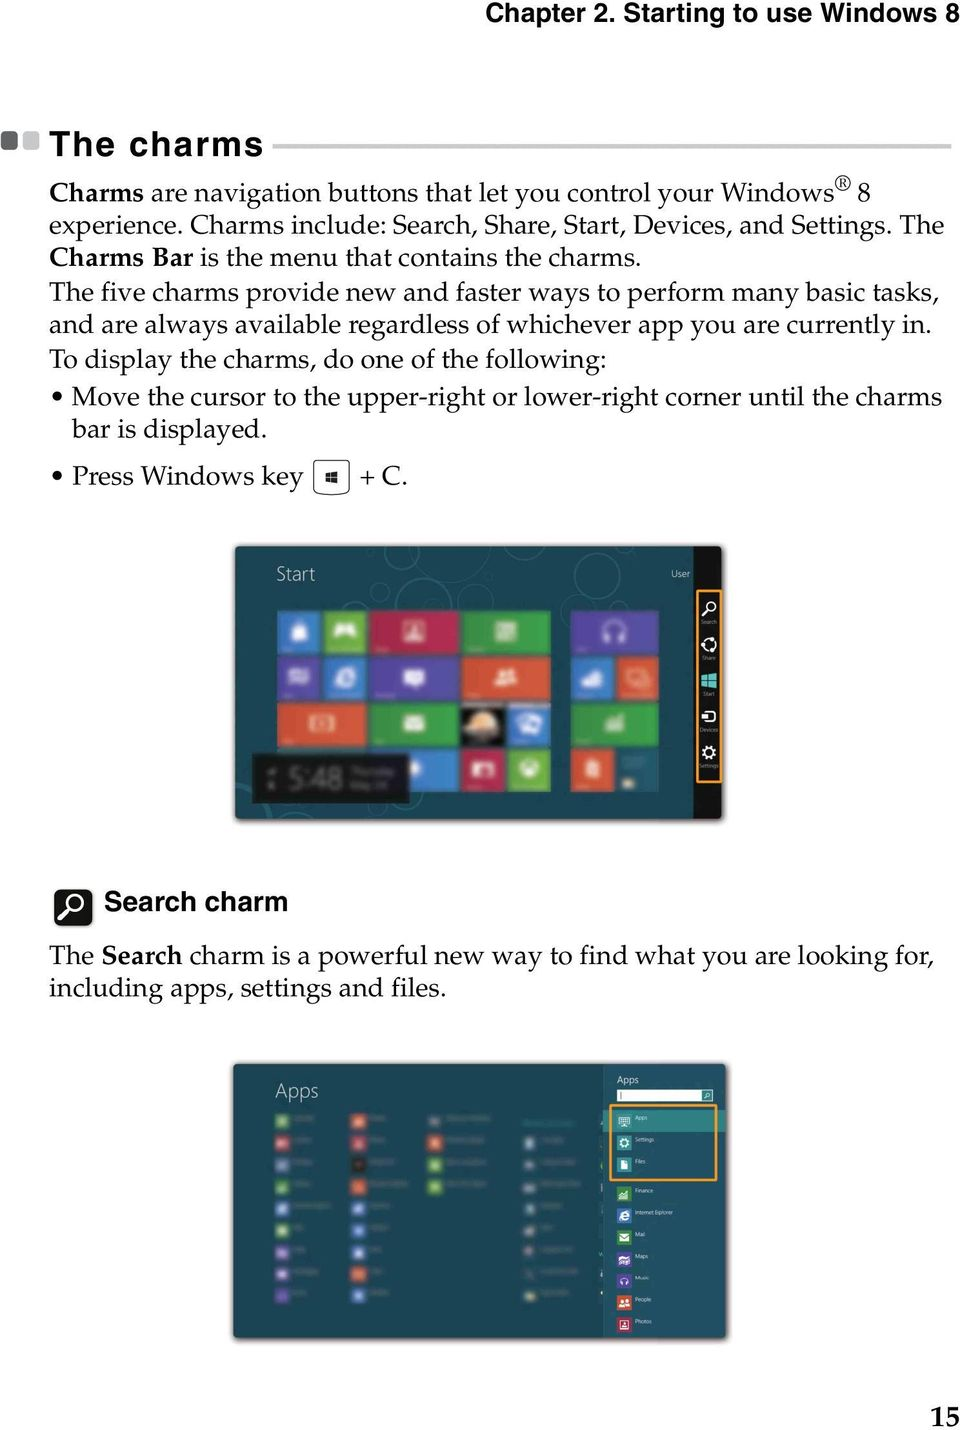 - - - - - - - - - - - Charms are navigation buttons that let you control your Windows 8 experience. Charms include: Search, Share, Start, Devices, and Settings.